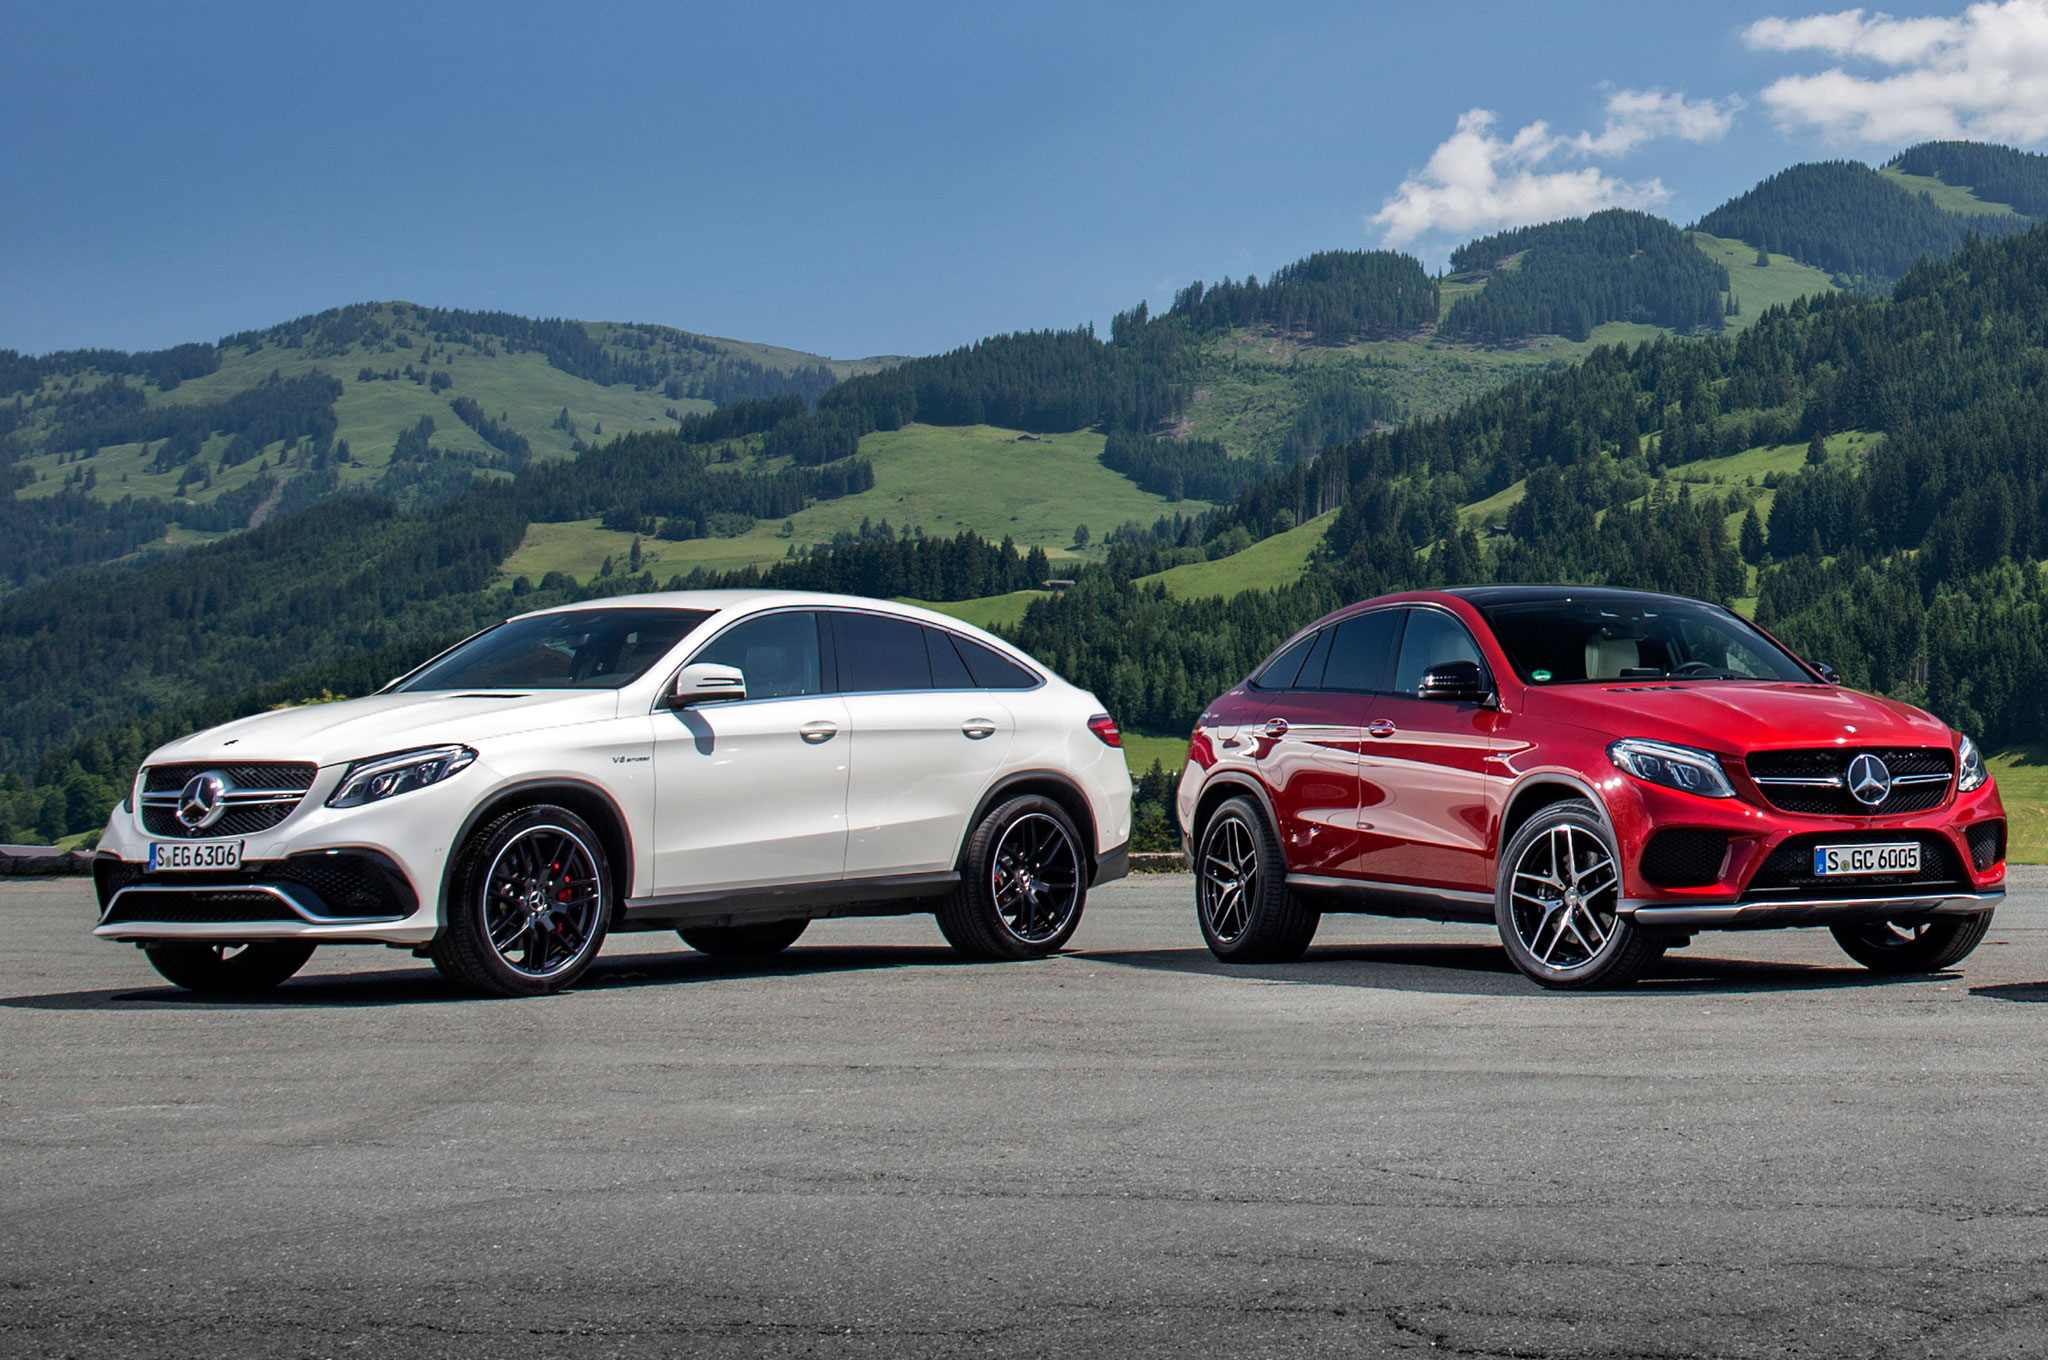 2016 mercedes benz gle class coupe photos informations. Black Bedroom Furniture Sets. Home Design Ideas